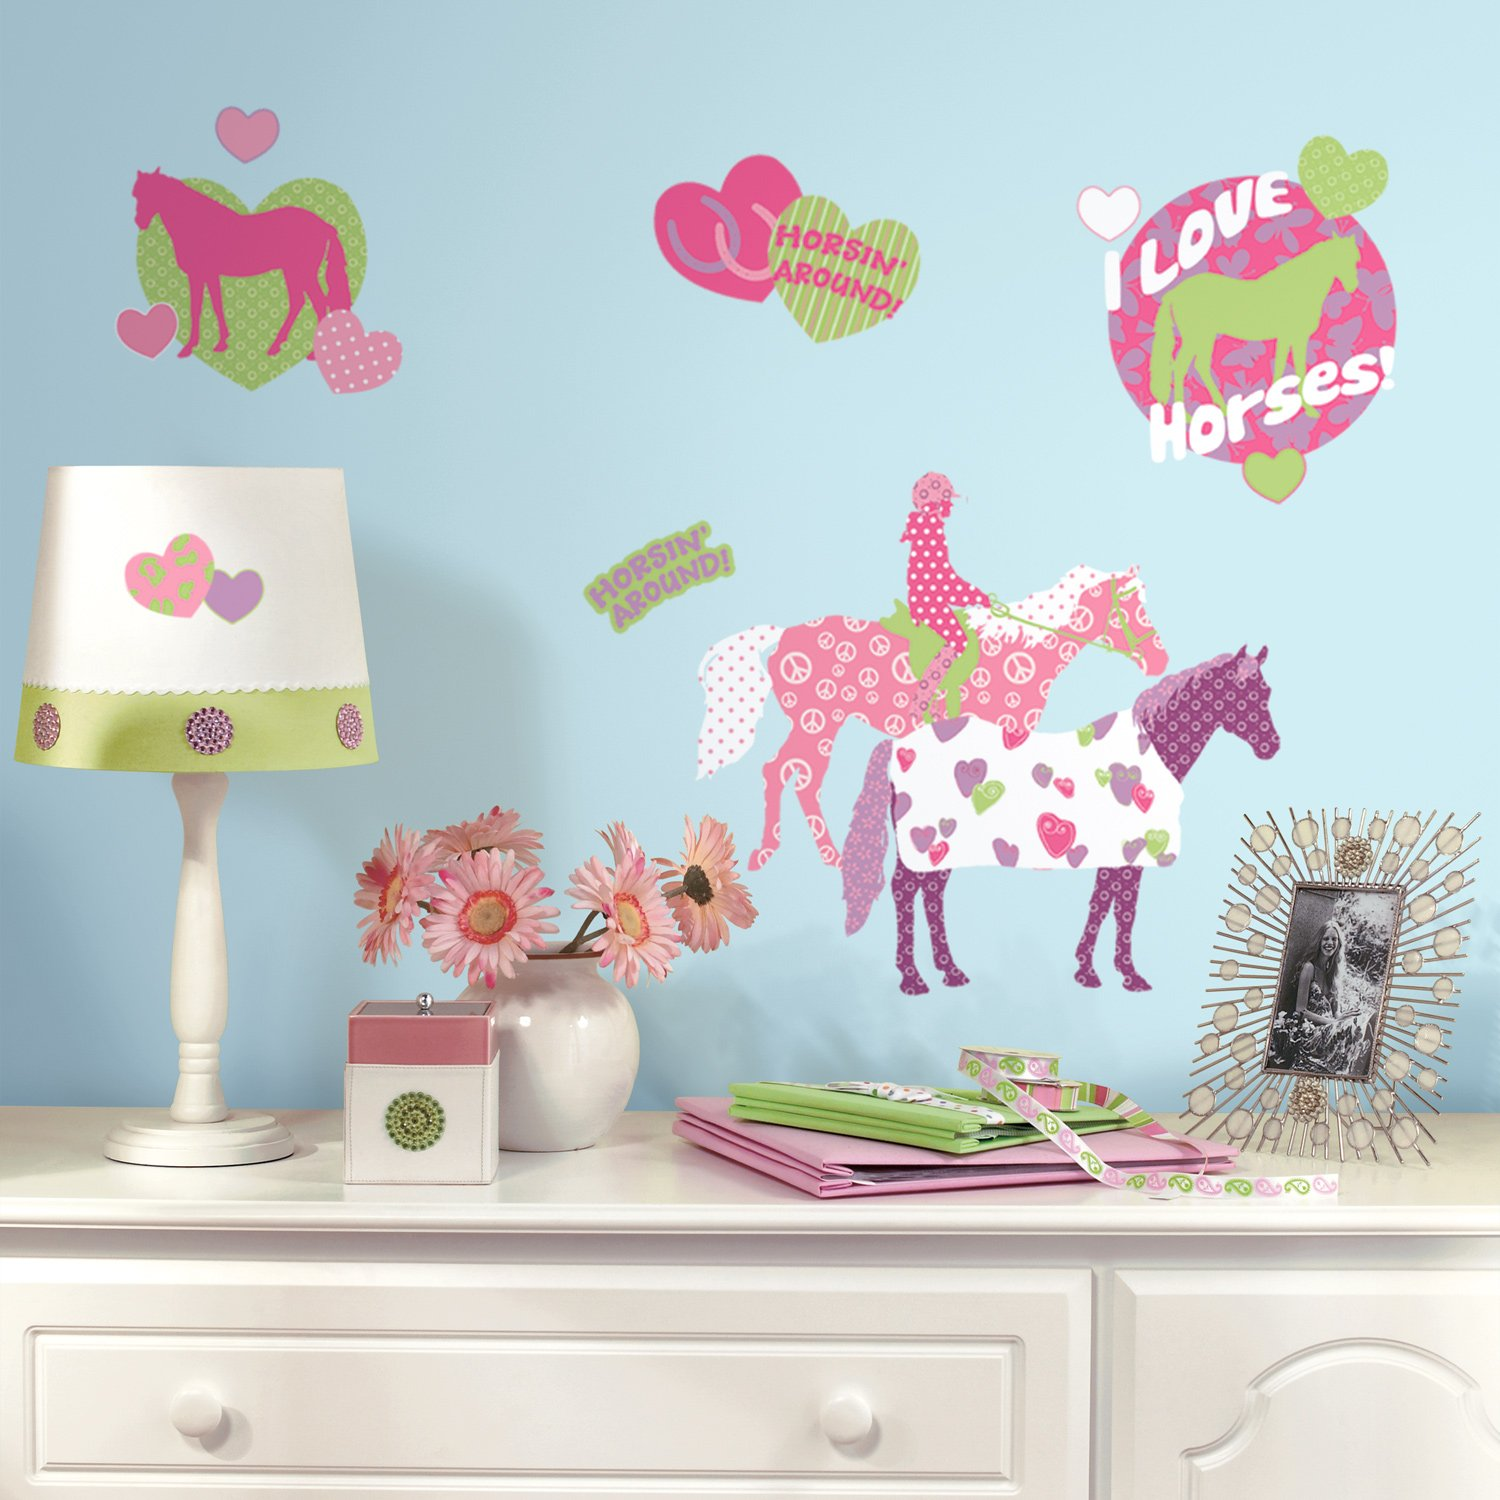 Roommates repositionable childrens wall stickers horse crazy roommates repositionable childrens wall stickers horse crazy amazon kitchen home amipublicfo Images